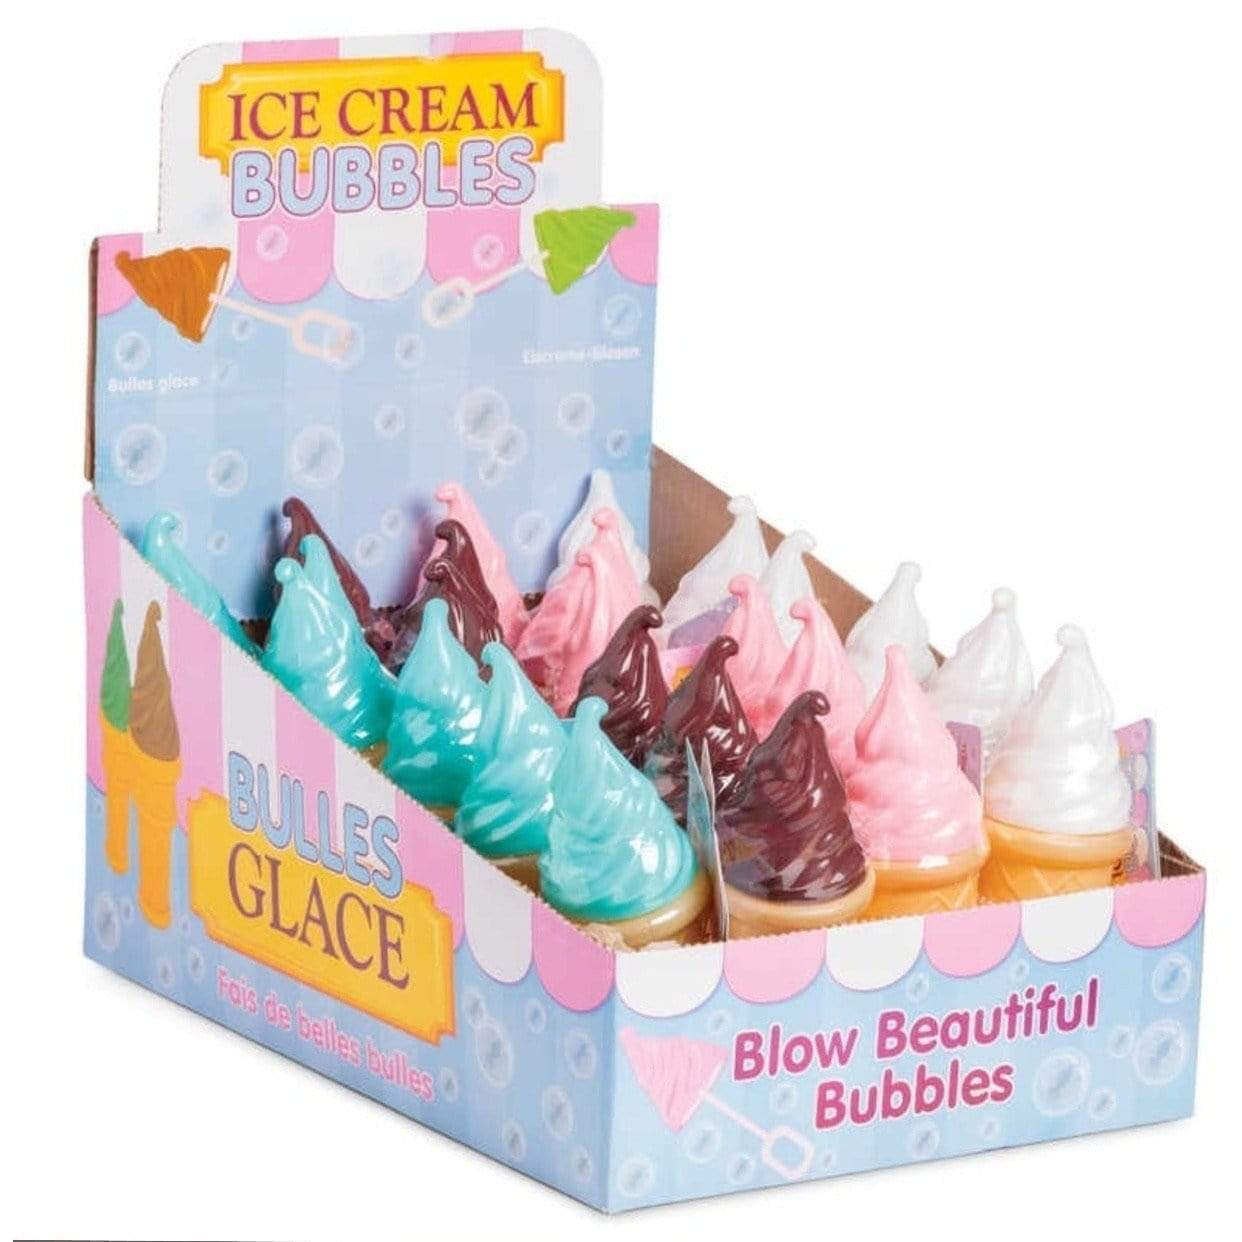 Bubbles in an Ice Cream Bottle Brown